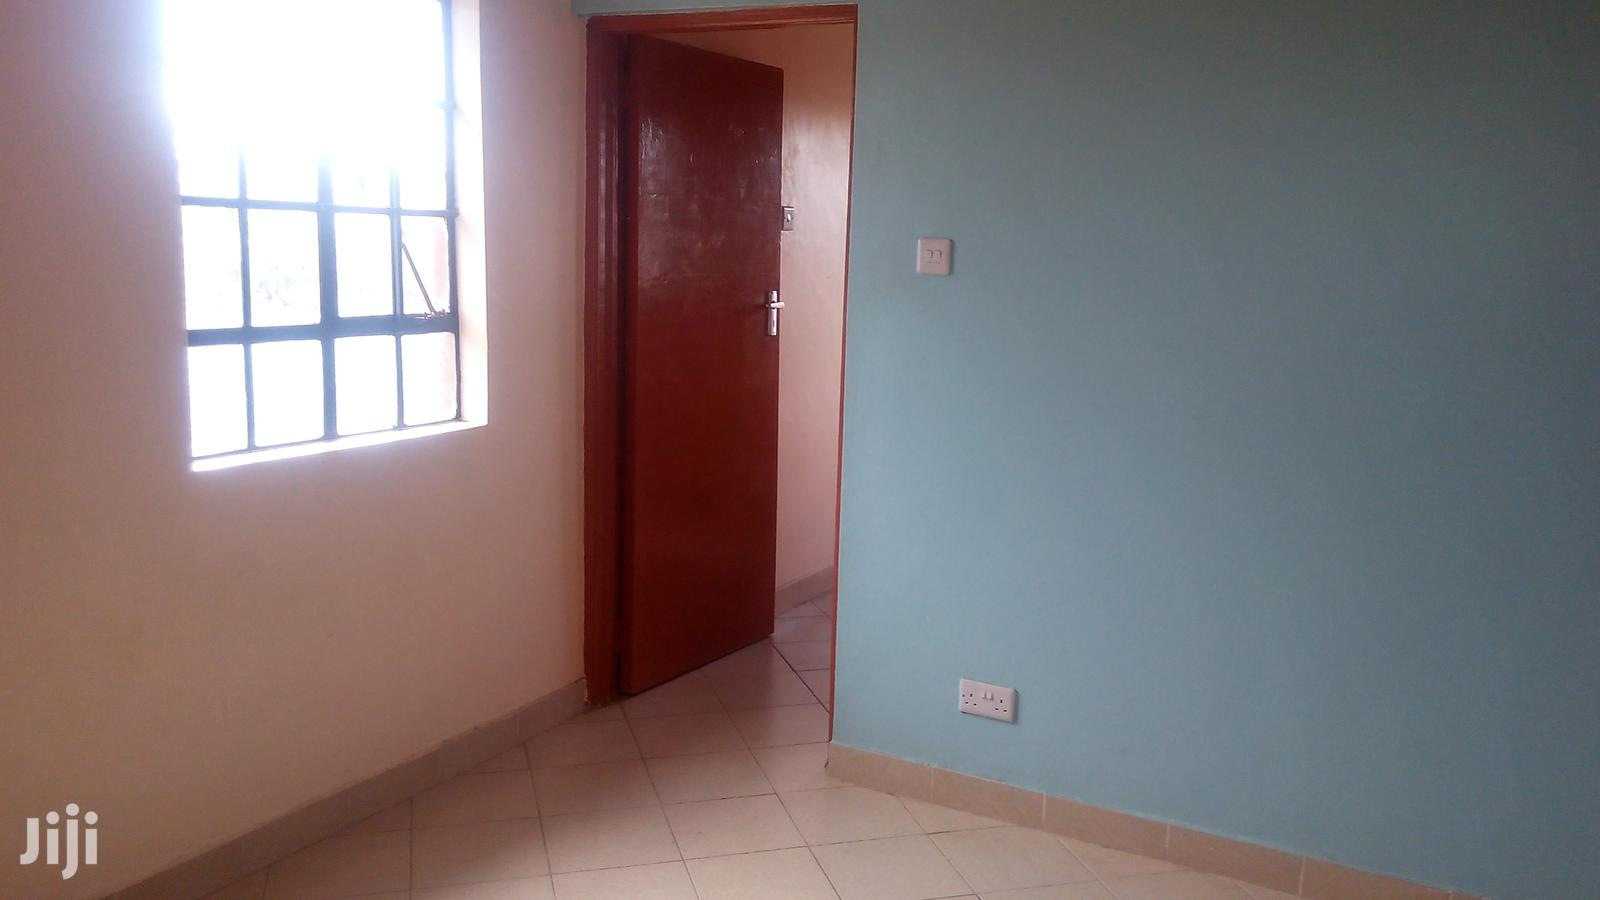 One Bedroom For Rent On A Floor Of 3tenants | Houses & Apartments For Rent for sale in Ongata Rongai, Kajiado, Kenya